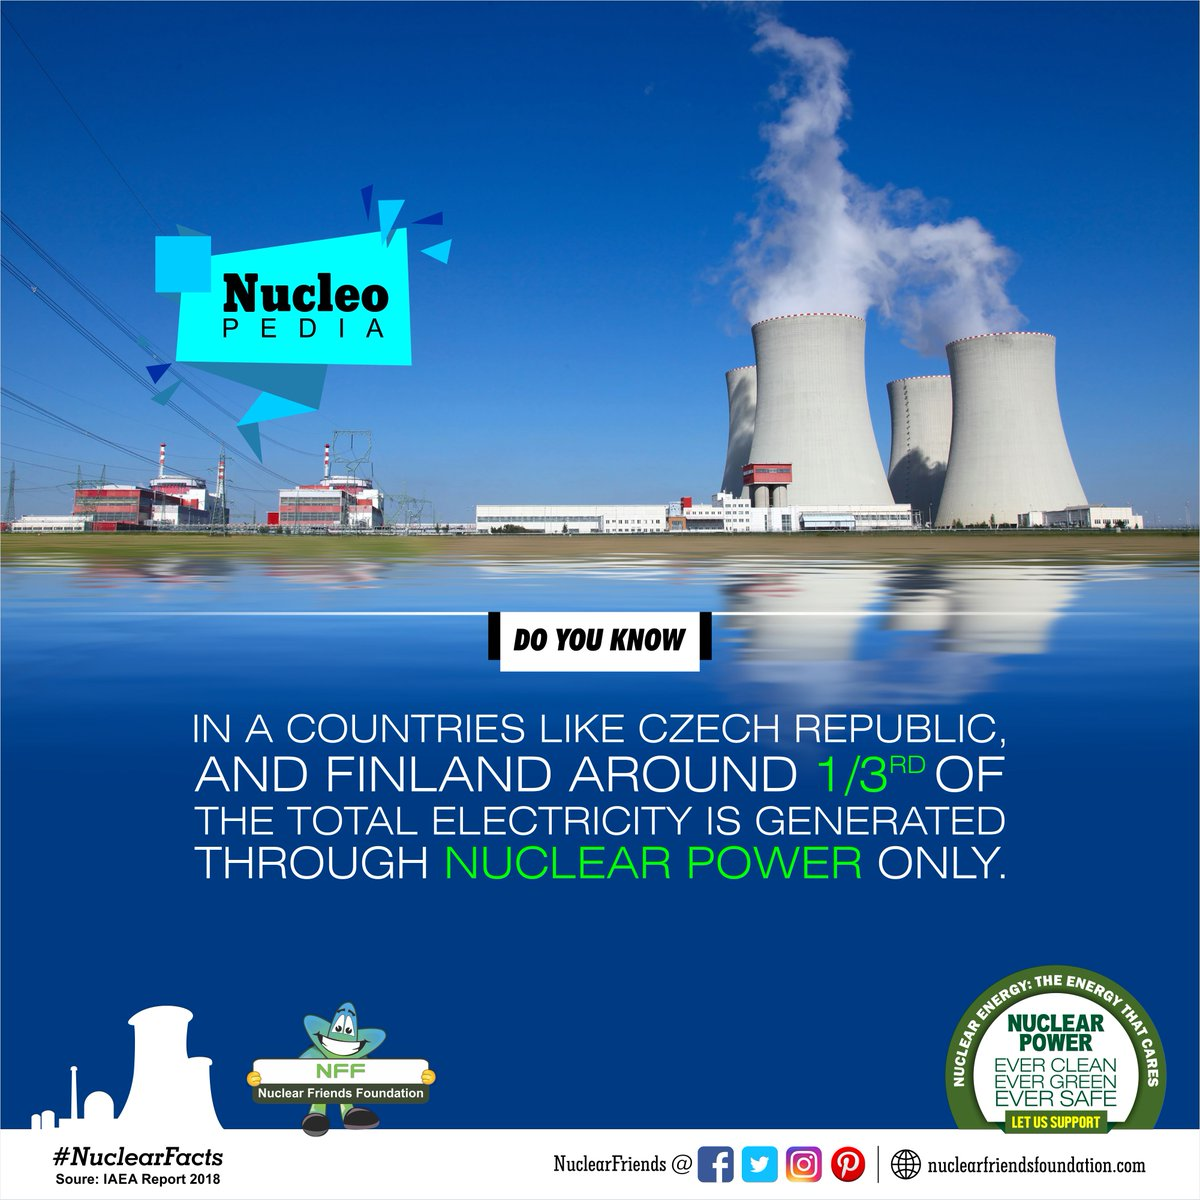 #DoYouKnow In a countries like Czech Republic, and Finland around 1/3rd of the total electricity is generated through Nuclear Power only.  Reach us @ http://nuclearfriendsfoundation.com  #NuclearPower #NuclearEnergy #Evergreen  #NuclearFacts  #FridayFeeling #FridayThoughts @iaeaorg